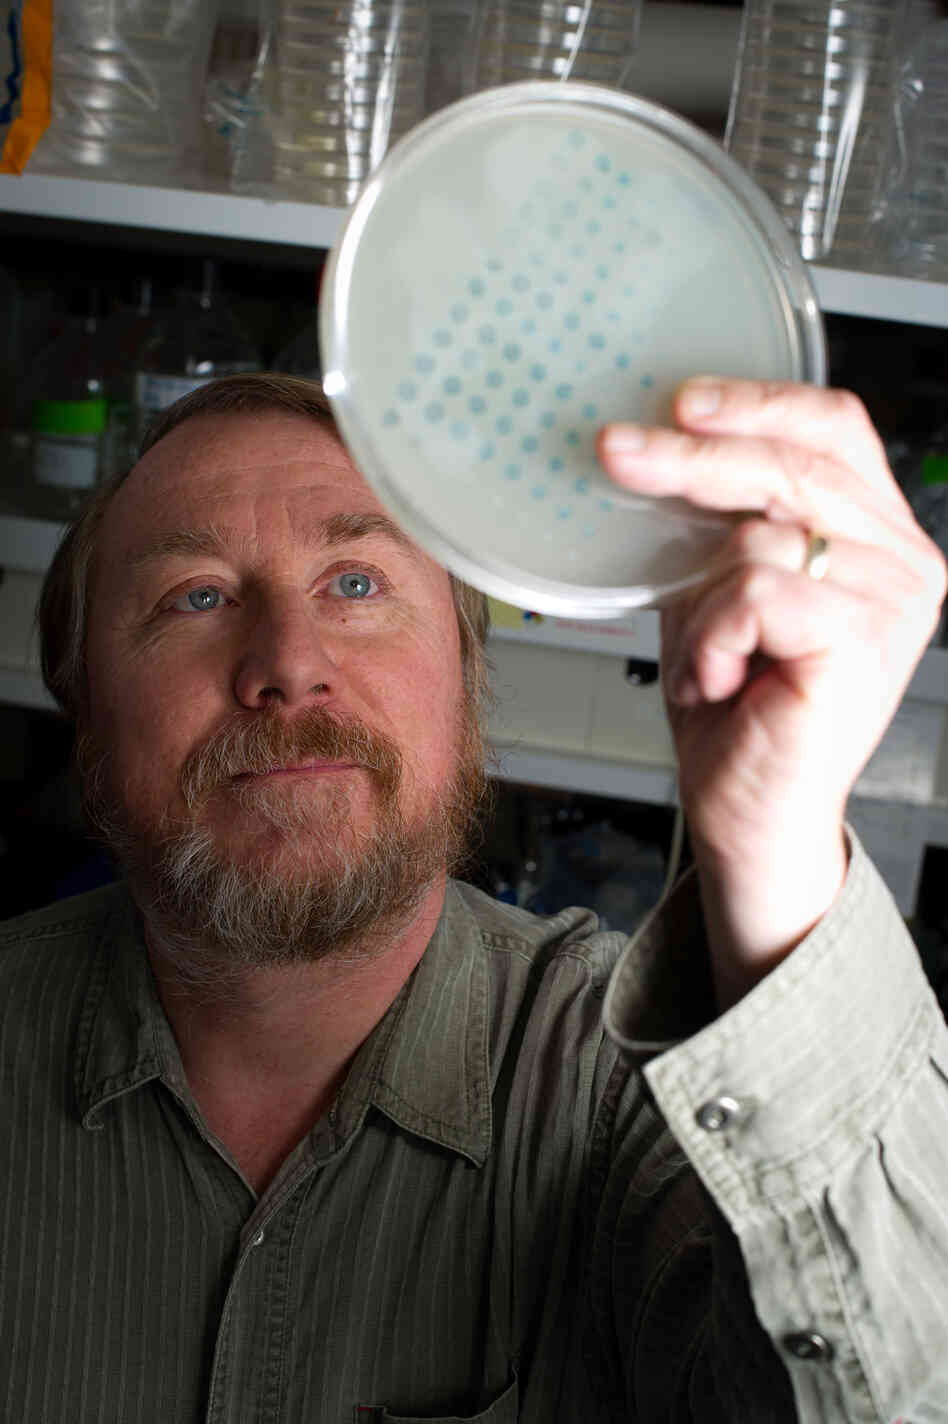 Richard Lenski examines the growth of bacteria on a plate on Jan. 12. He began an evolution experiment in 1988 with 12 identical flasks of bacteria to see if the populations would change over time in